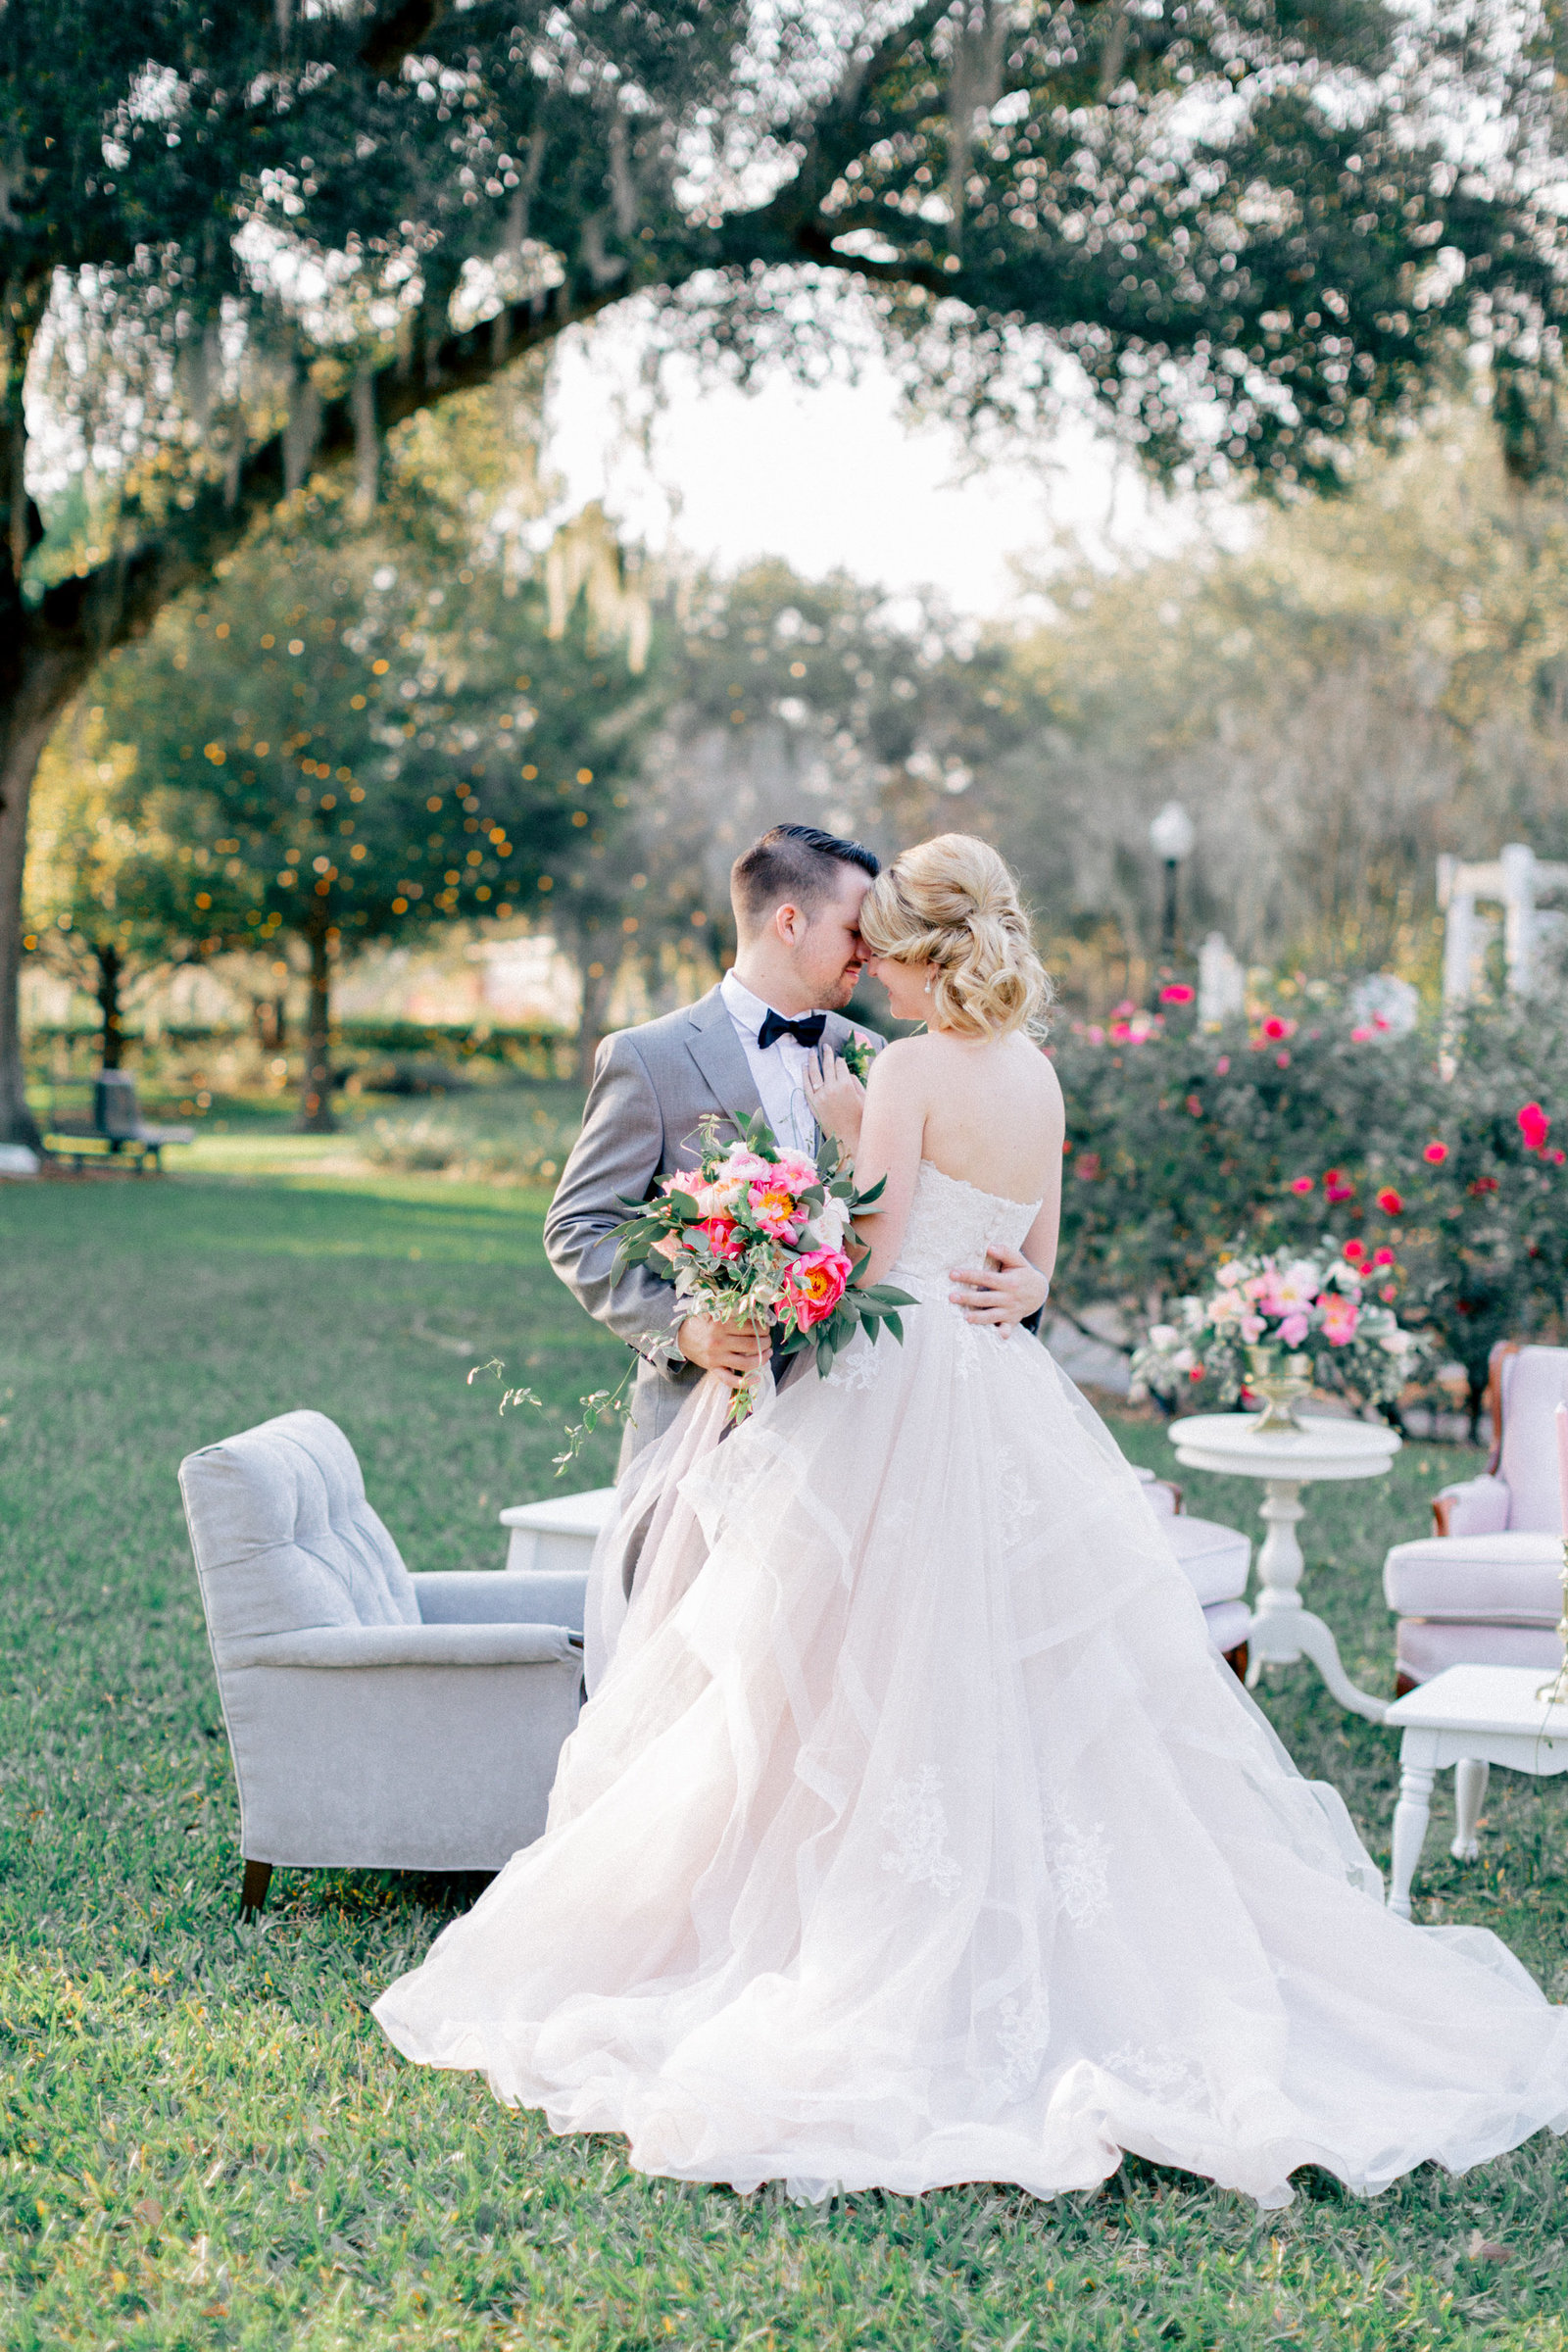 AisPortraits-Orlando-Wedding-Photographer-Honey-Dew-Shoot-246